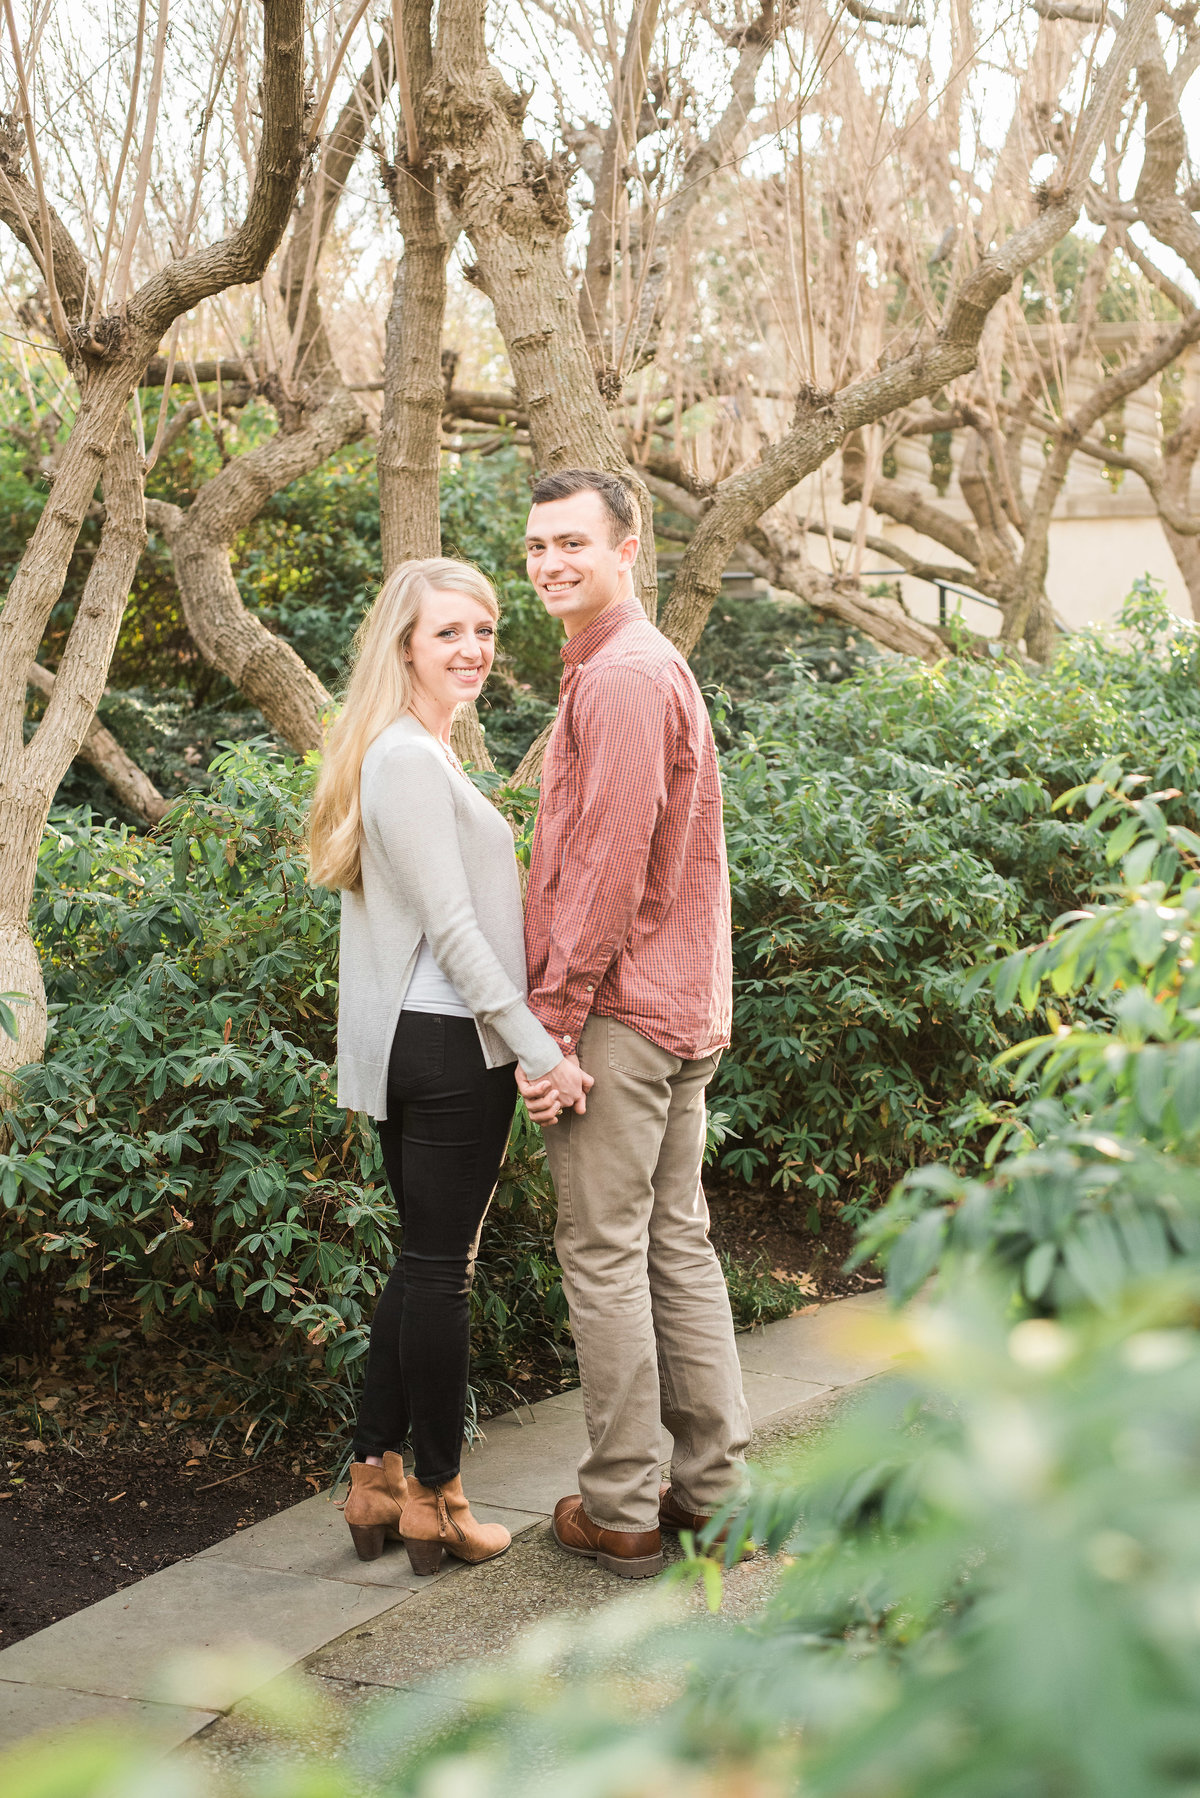 dallas-fort-worth-engagement-photographer-gray-door-photography-steph-erffmeyer10